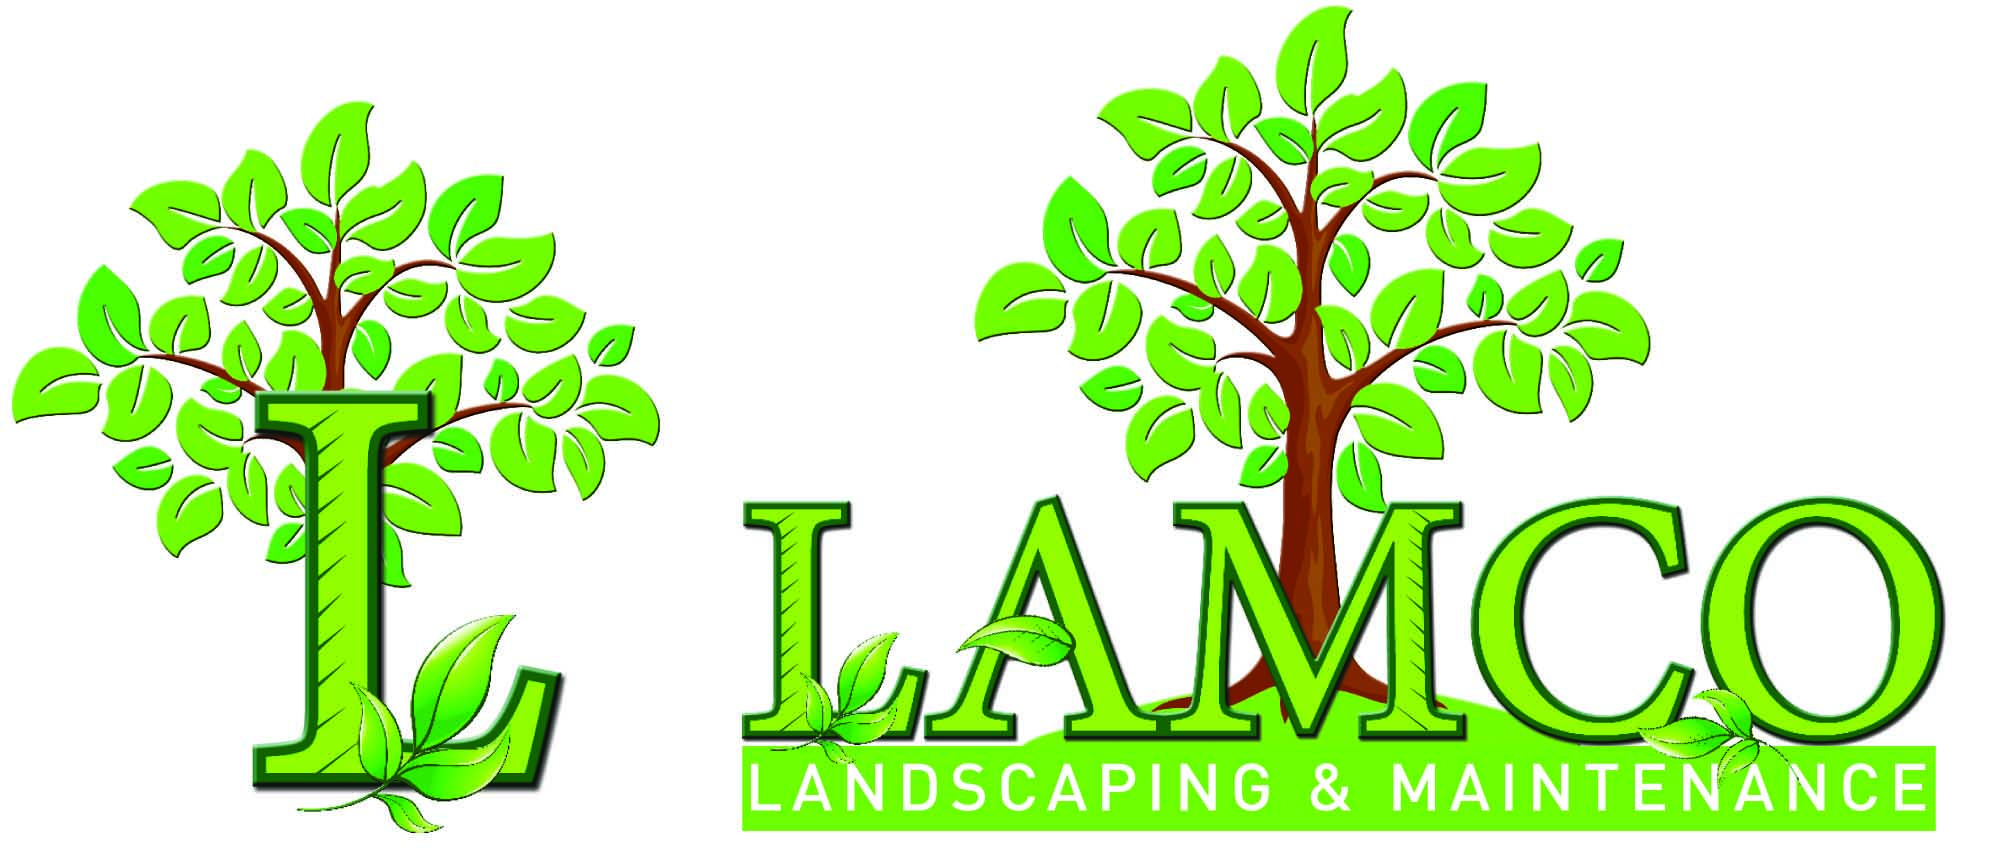 Applied Landscape Design: Detail Logo ideas for landscaping